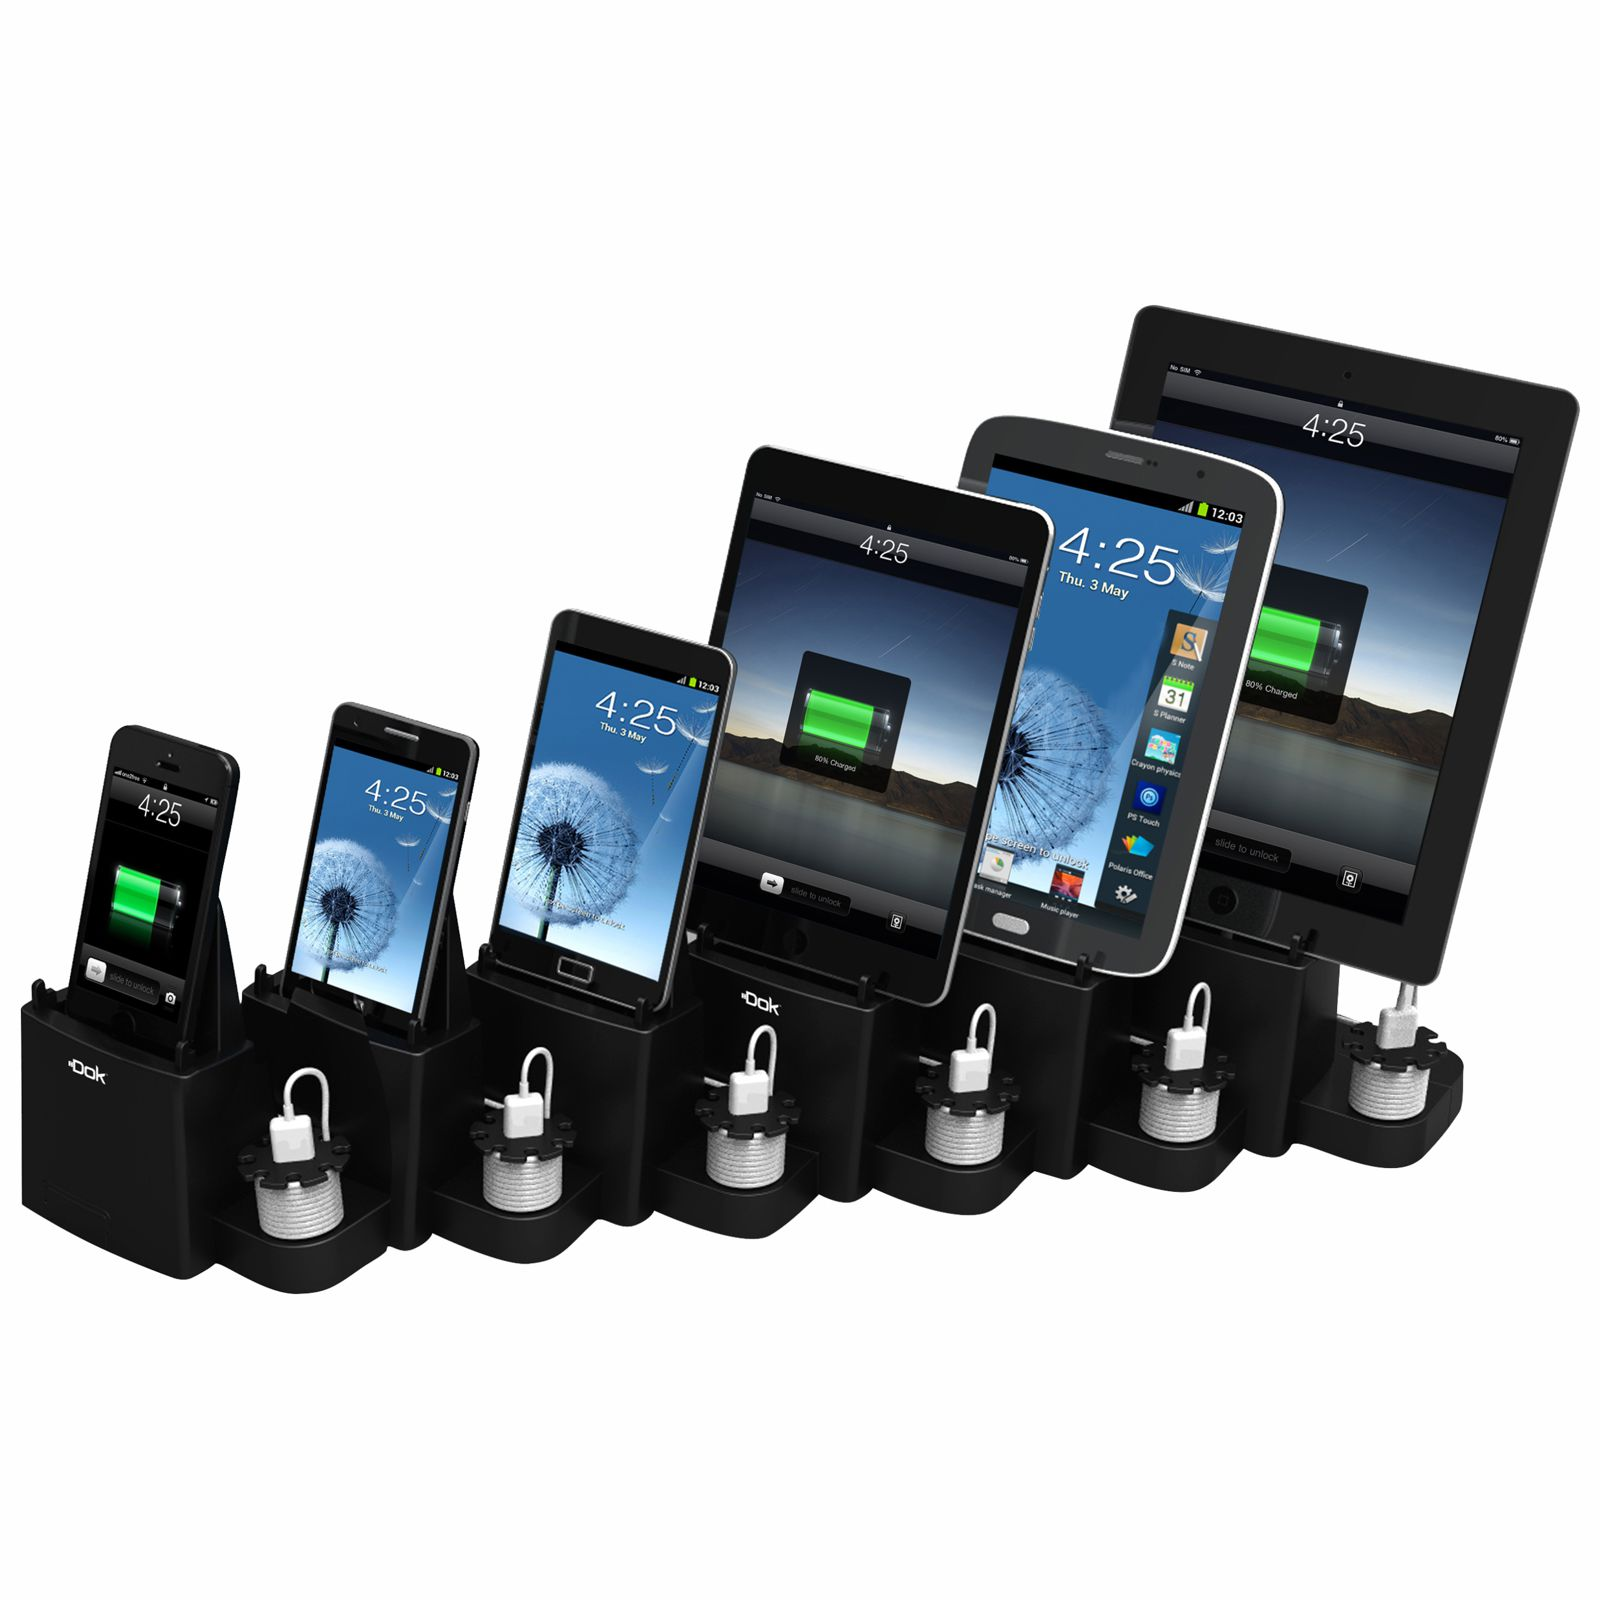 CR60 - 6 Port Smart Phone Charger